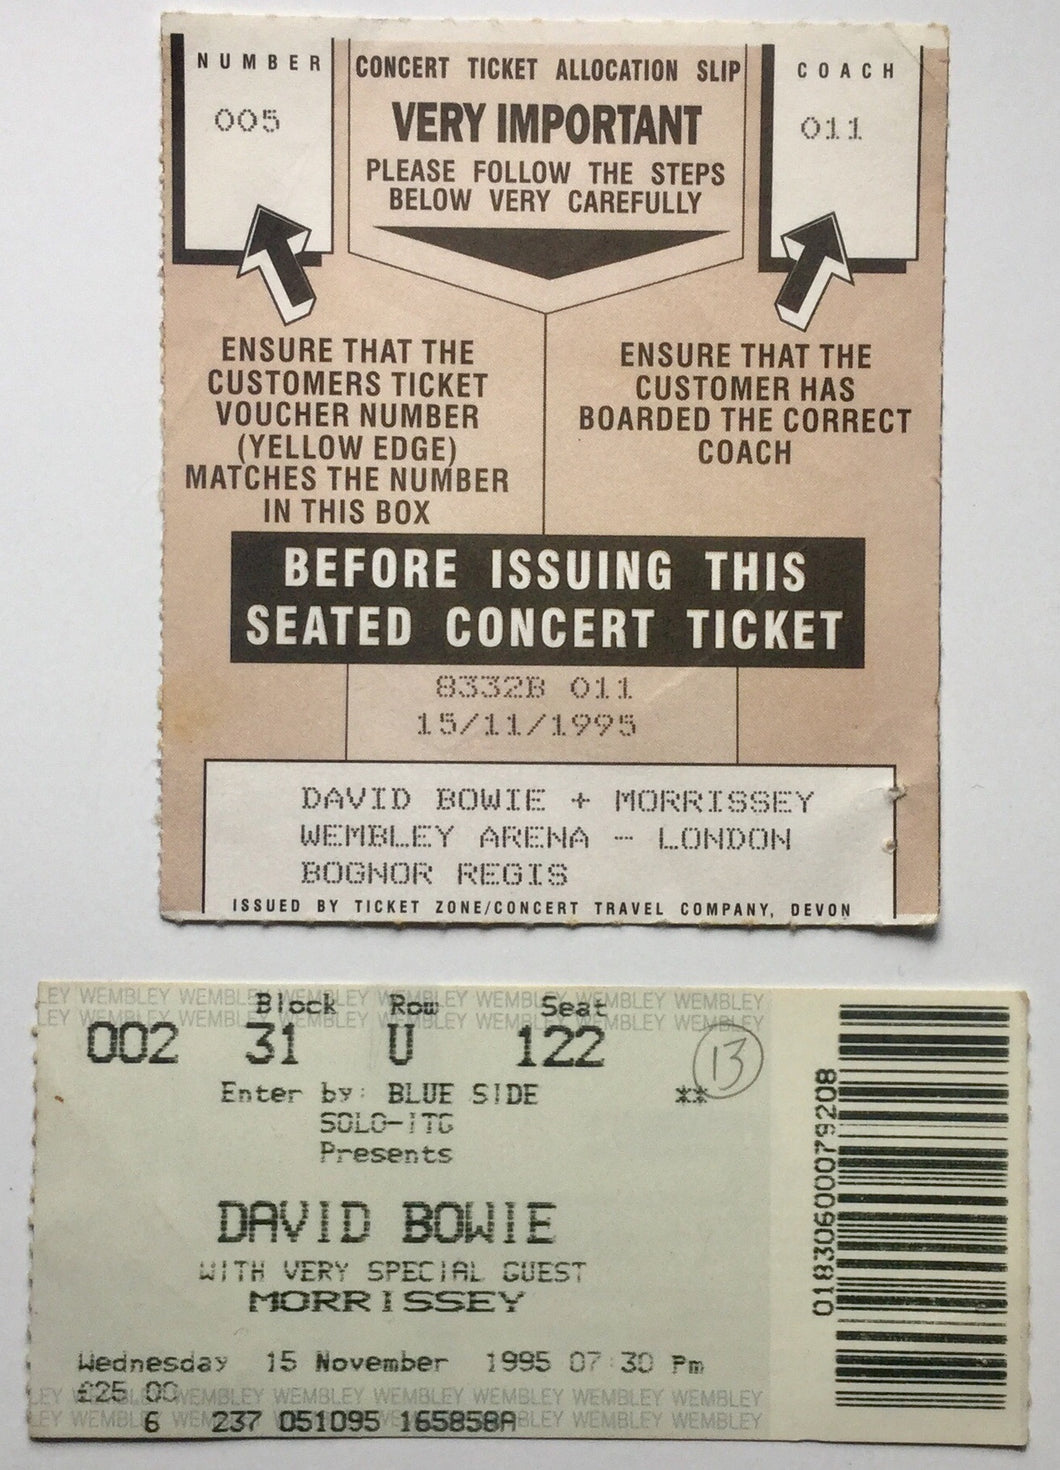 David Bowie Morrissey Original Used Concert & Coach Ticket Wembley Arena London 15th Nov 1995